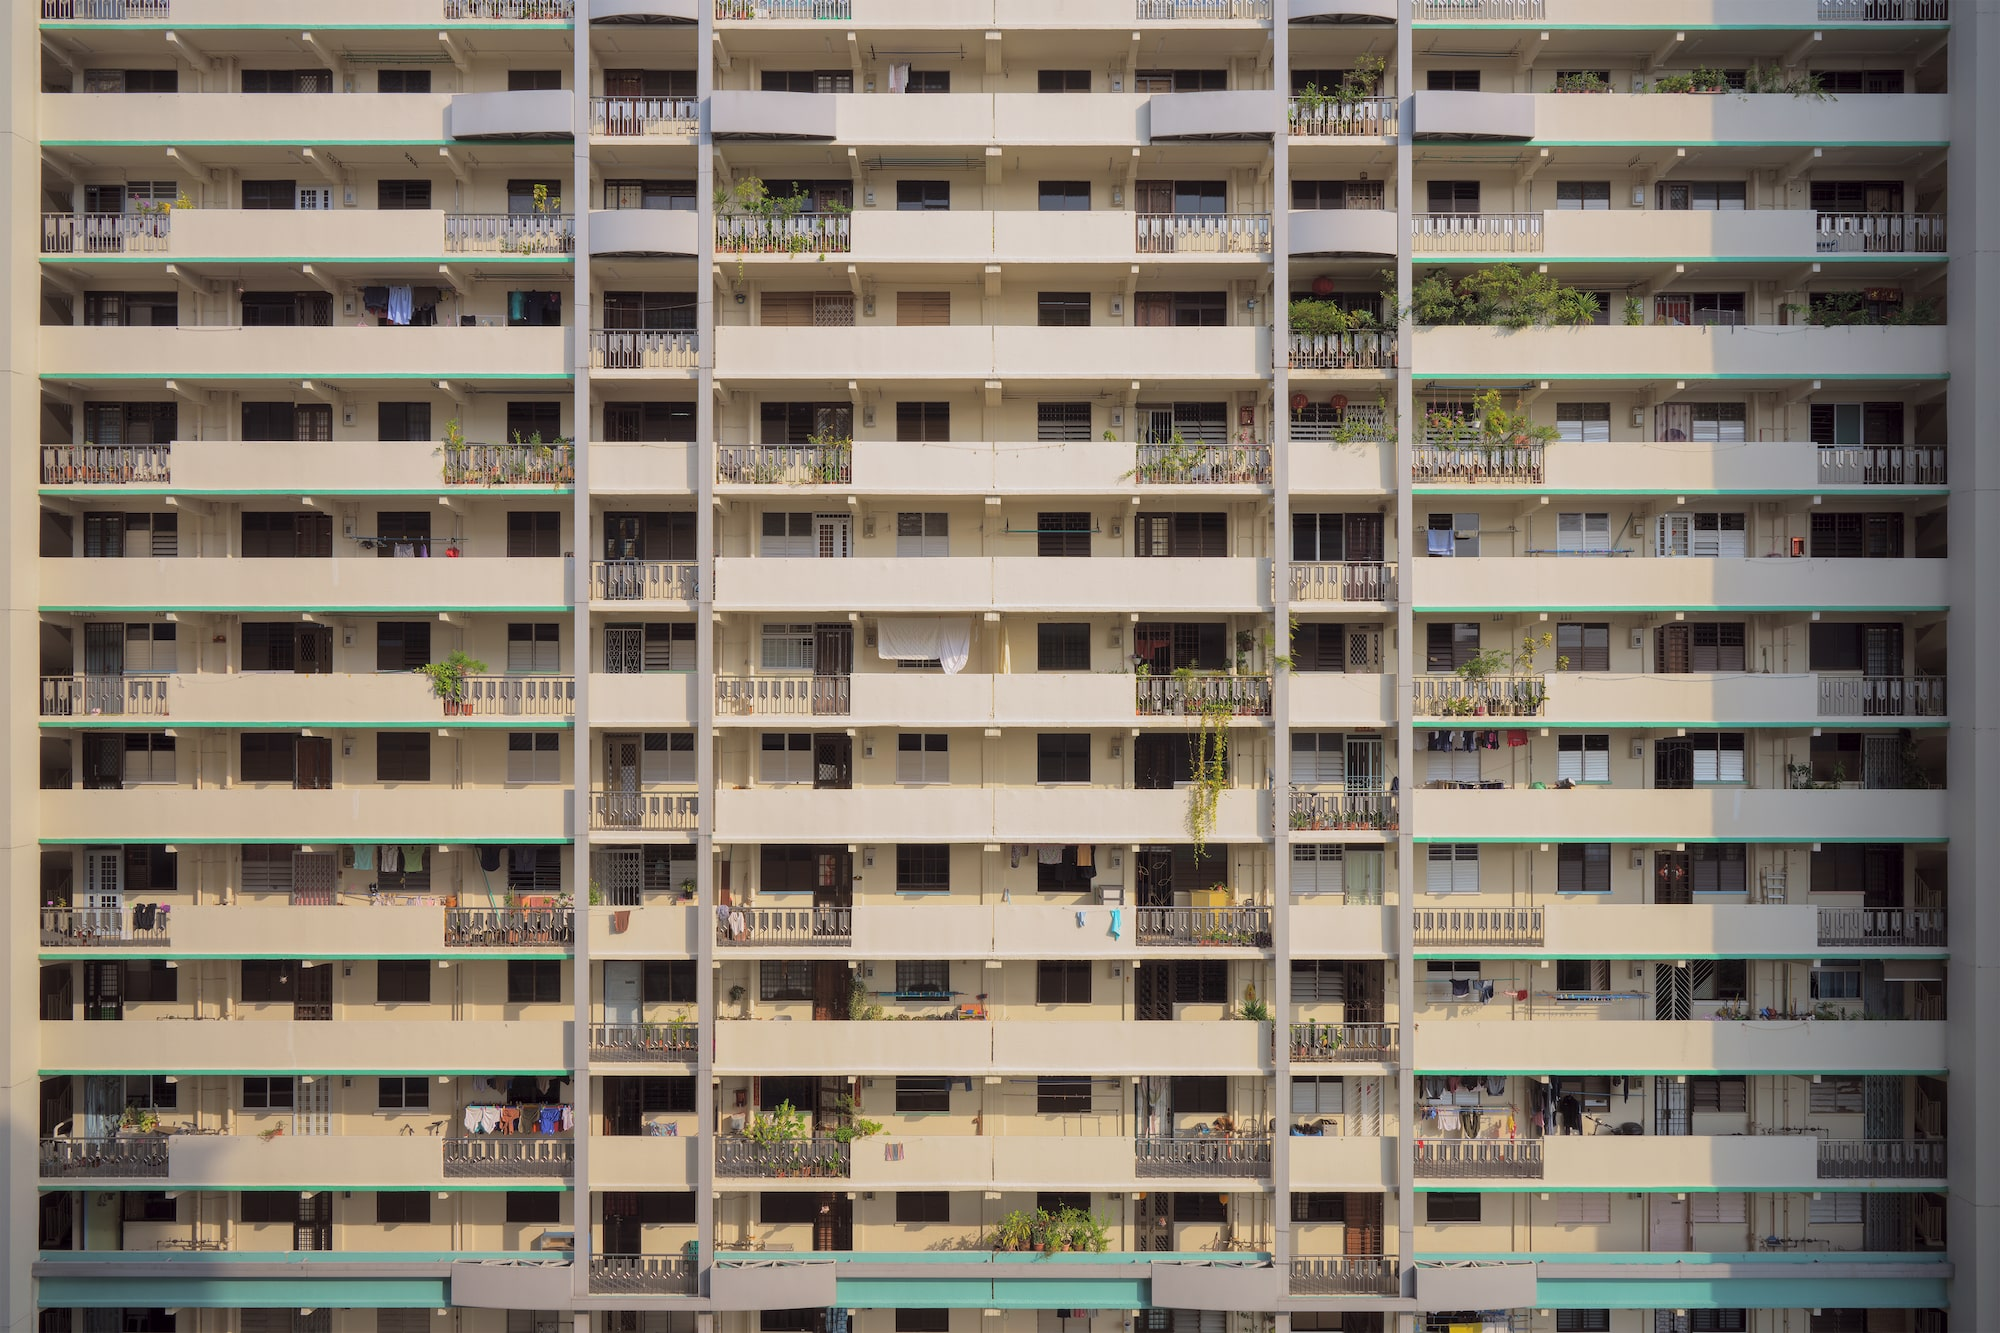 Commonwealth housing block in Singapore